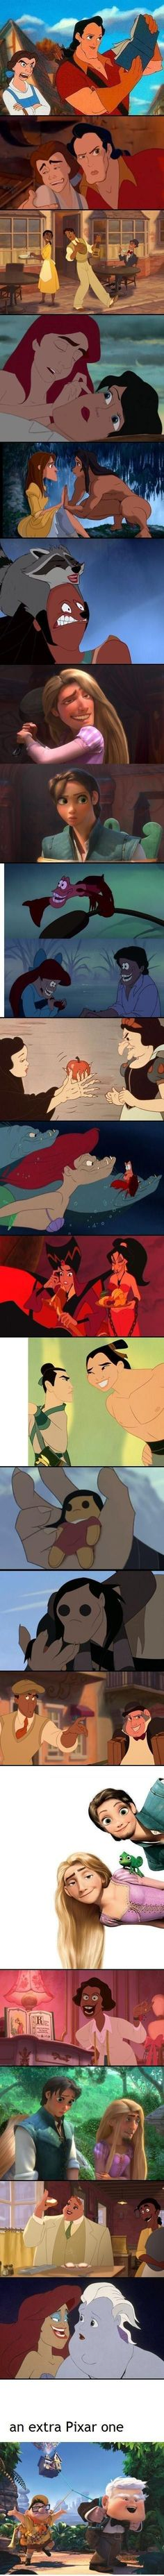 Disney Face Swaps ... Favorites are the Tangled ones and the Tarzan one... Hahaha laughed way too hard: